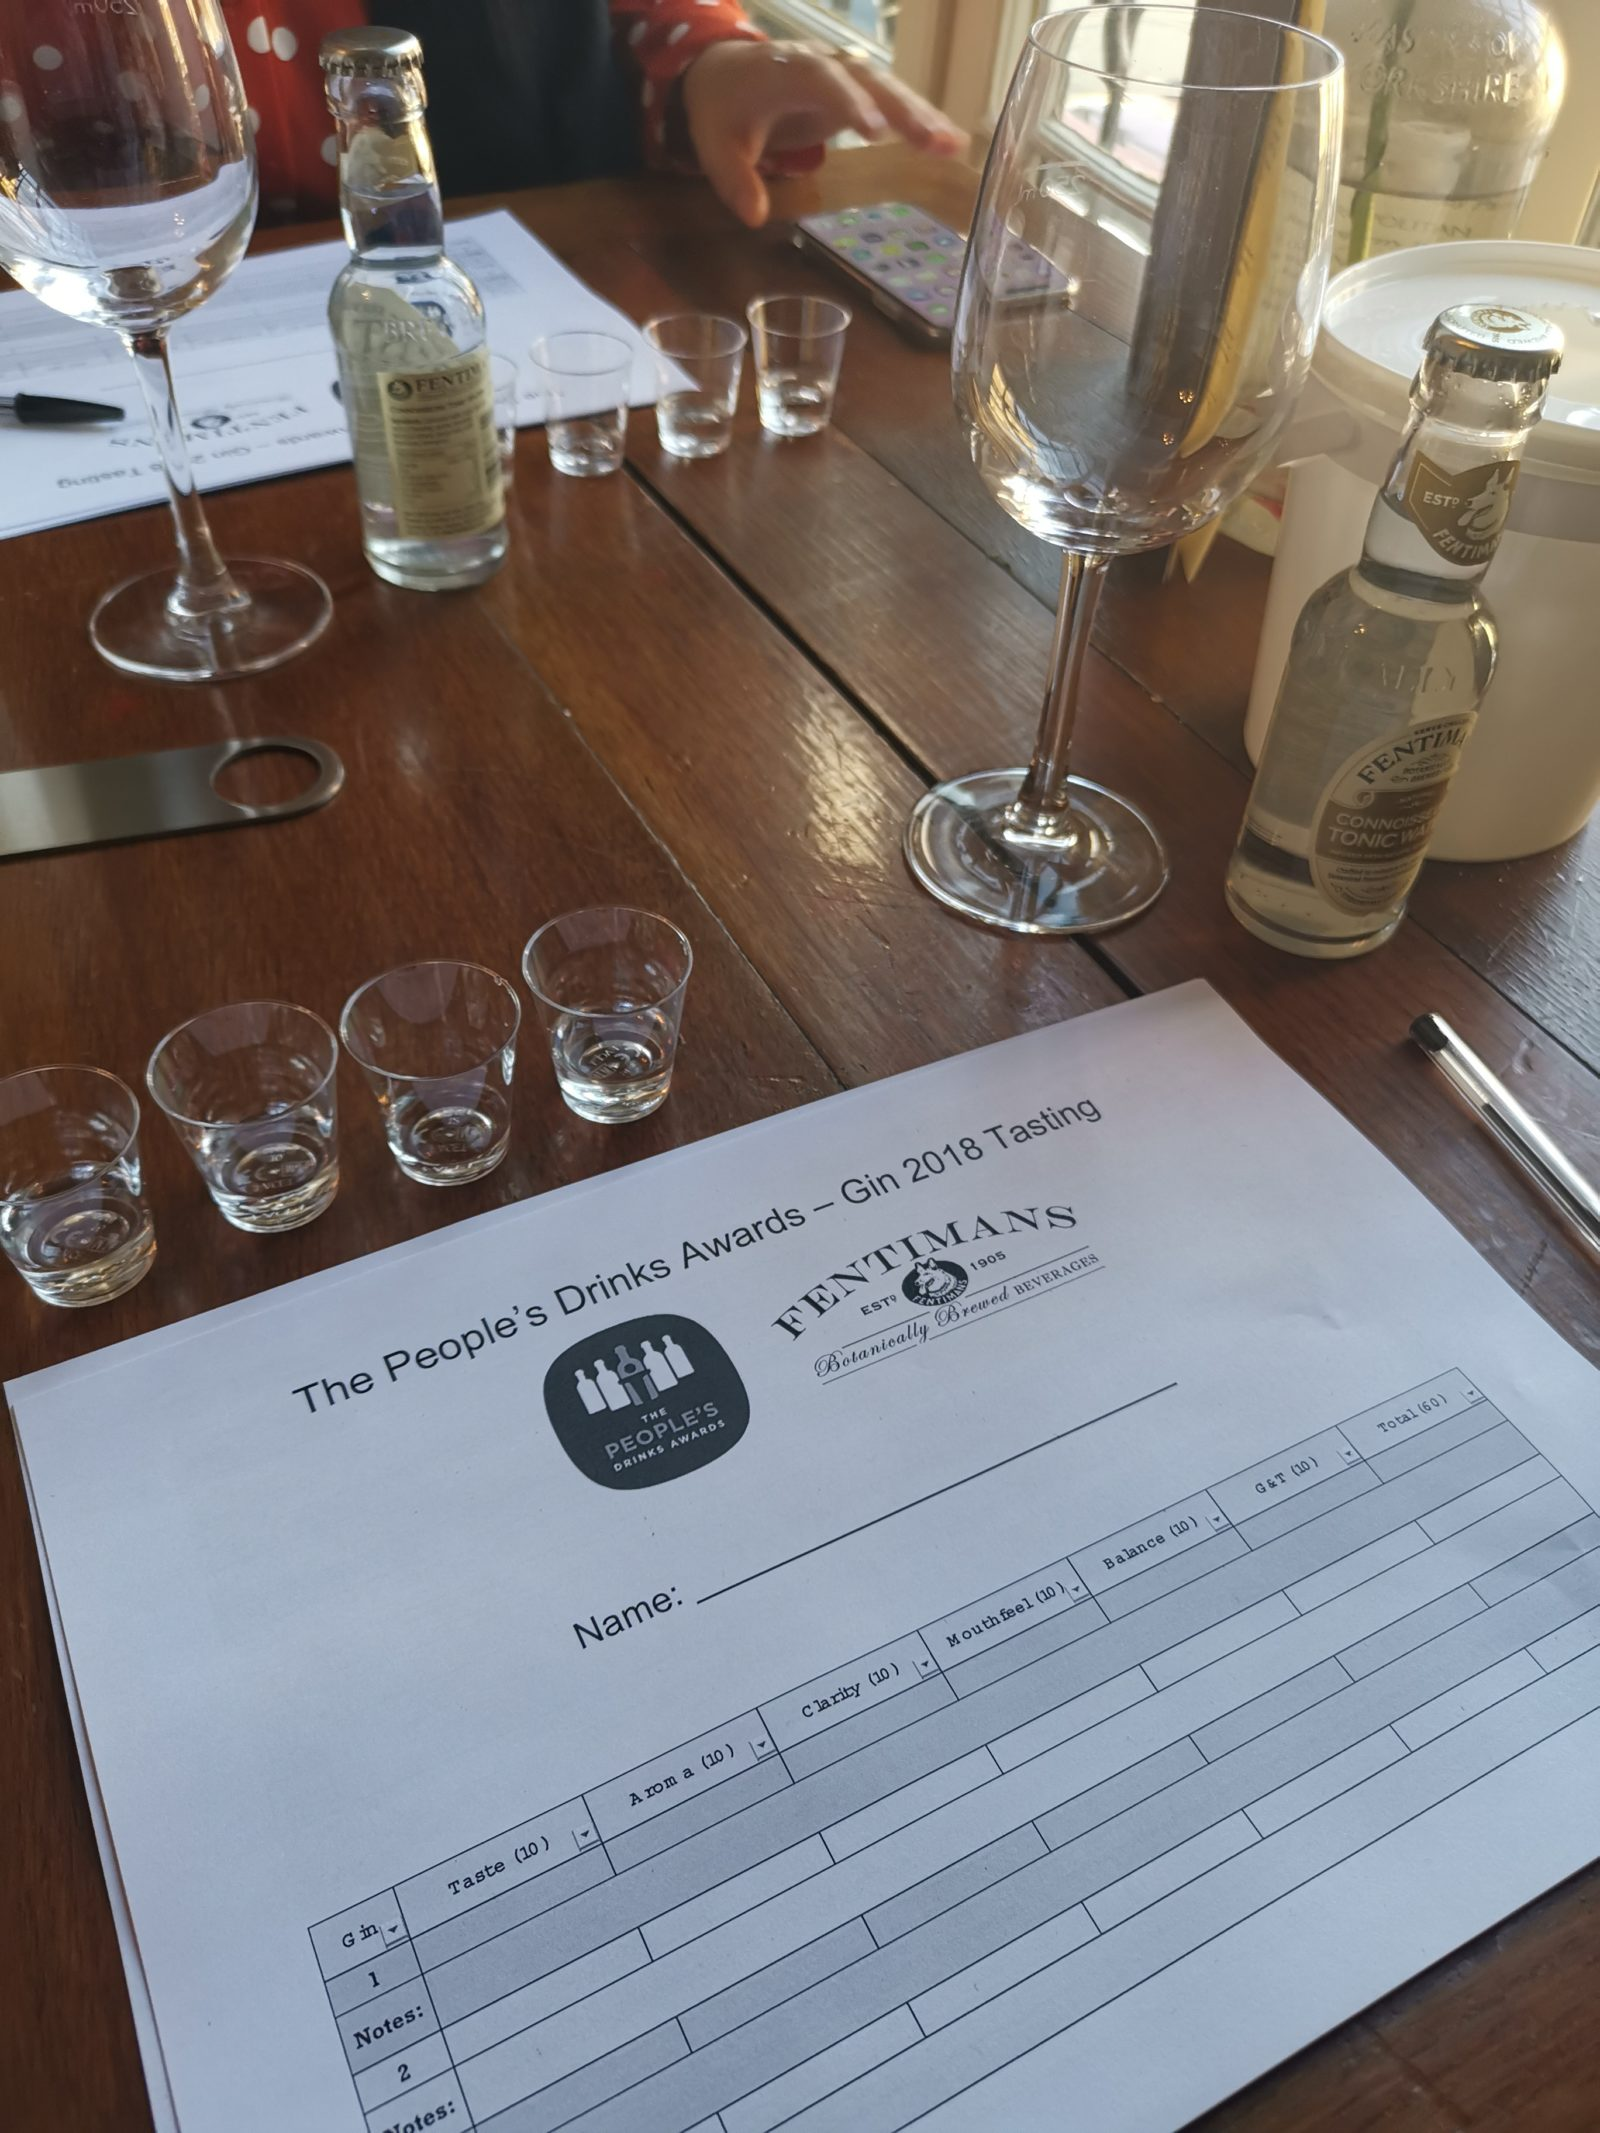 Peoples drink awards gin judging sheet